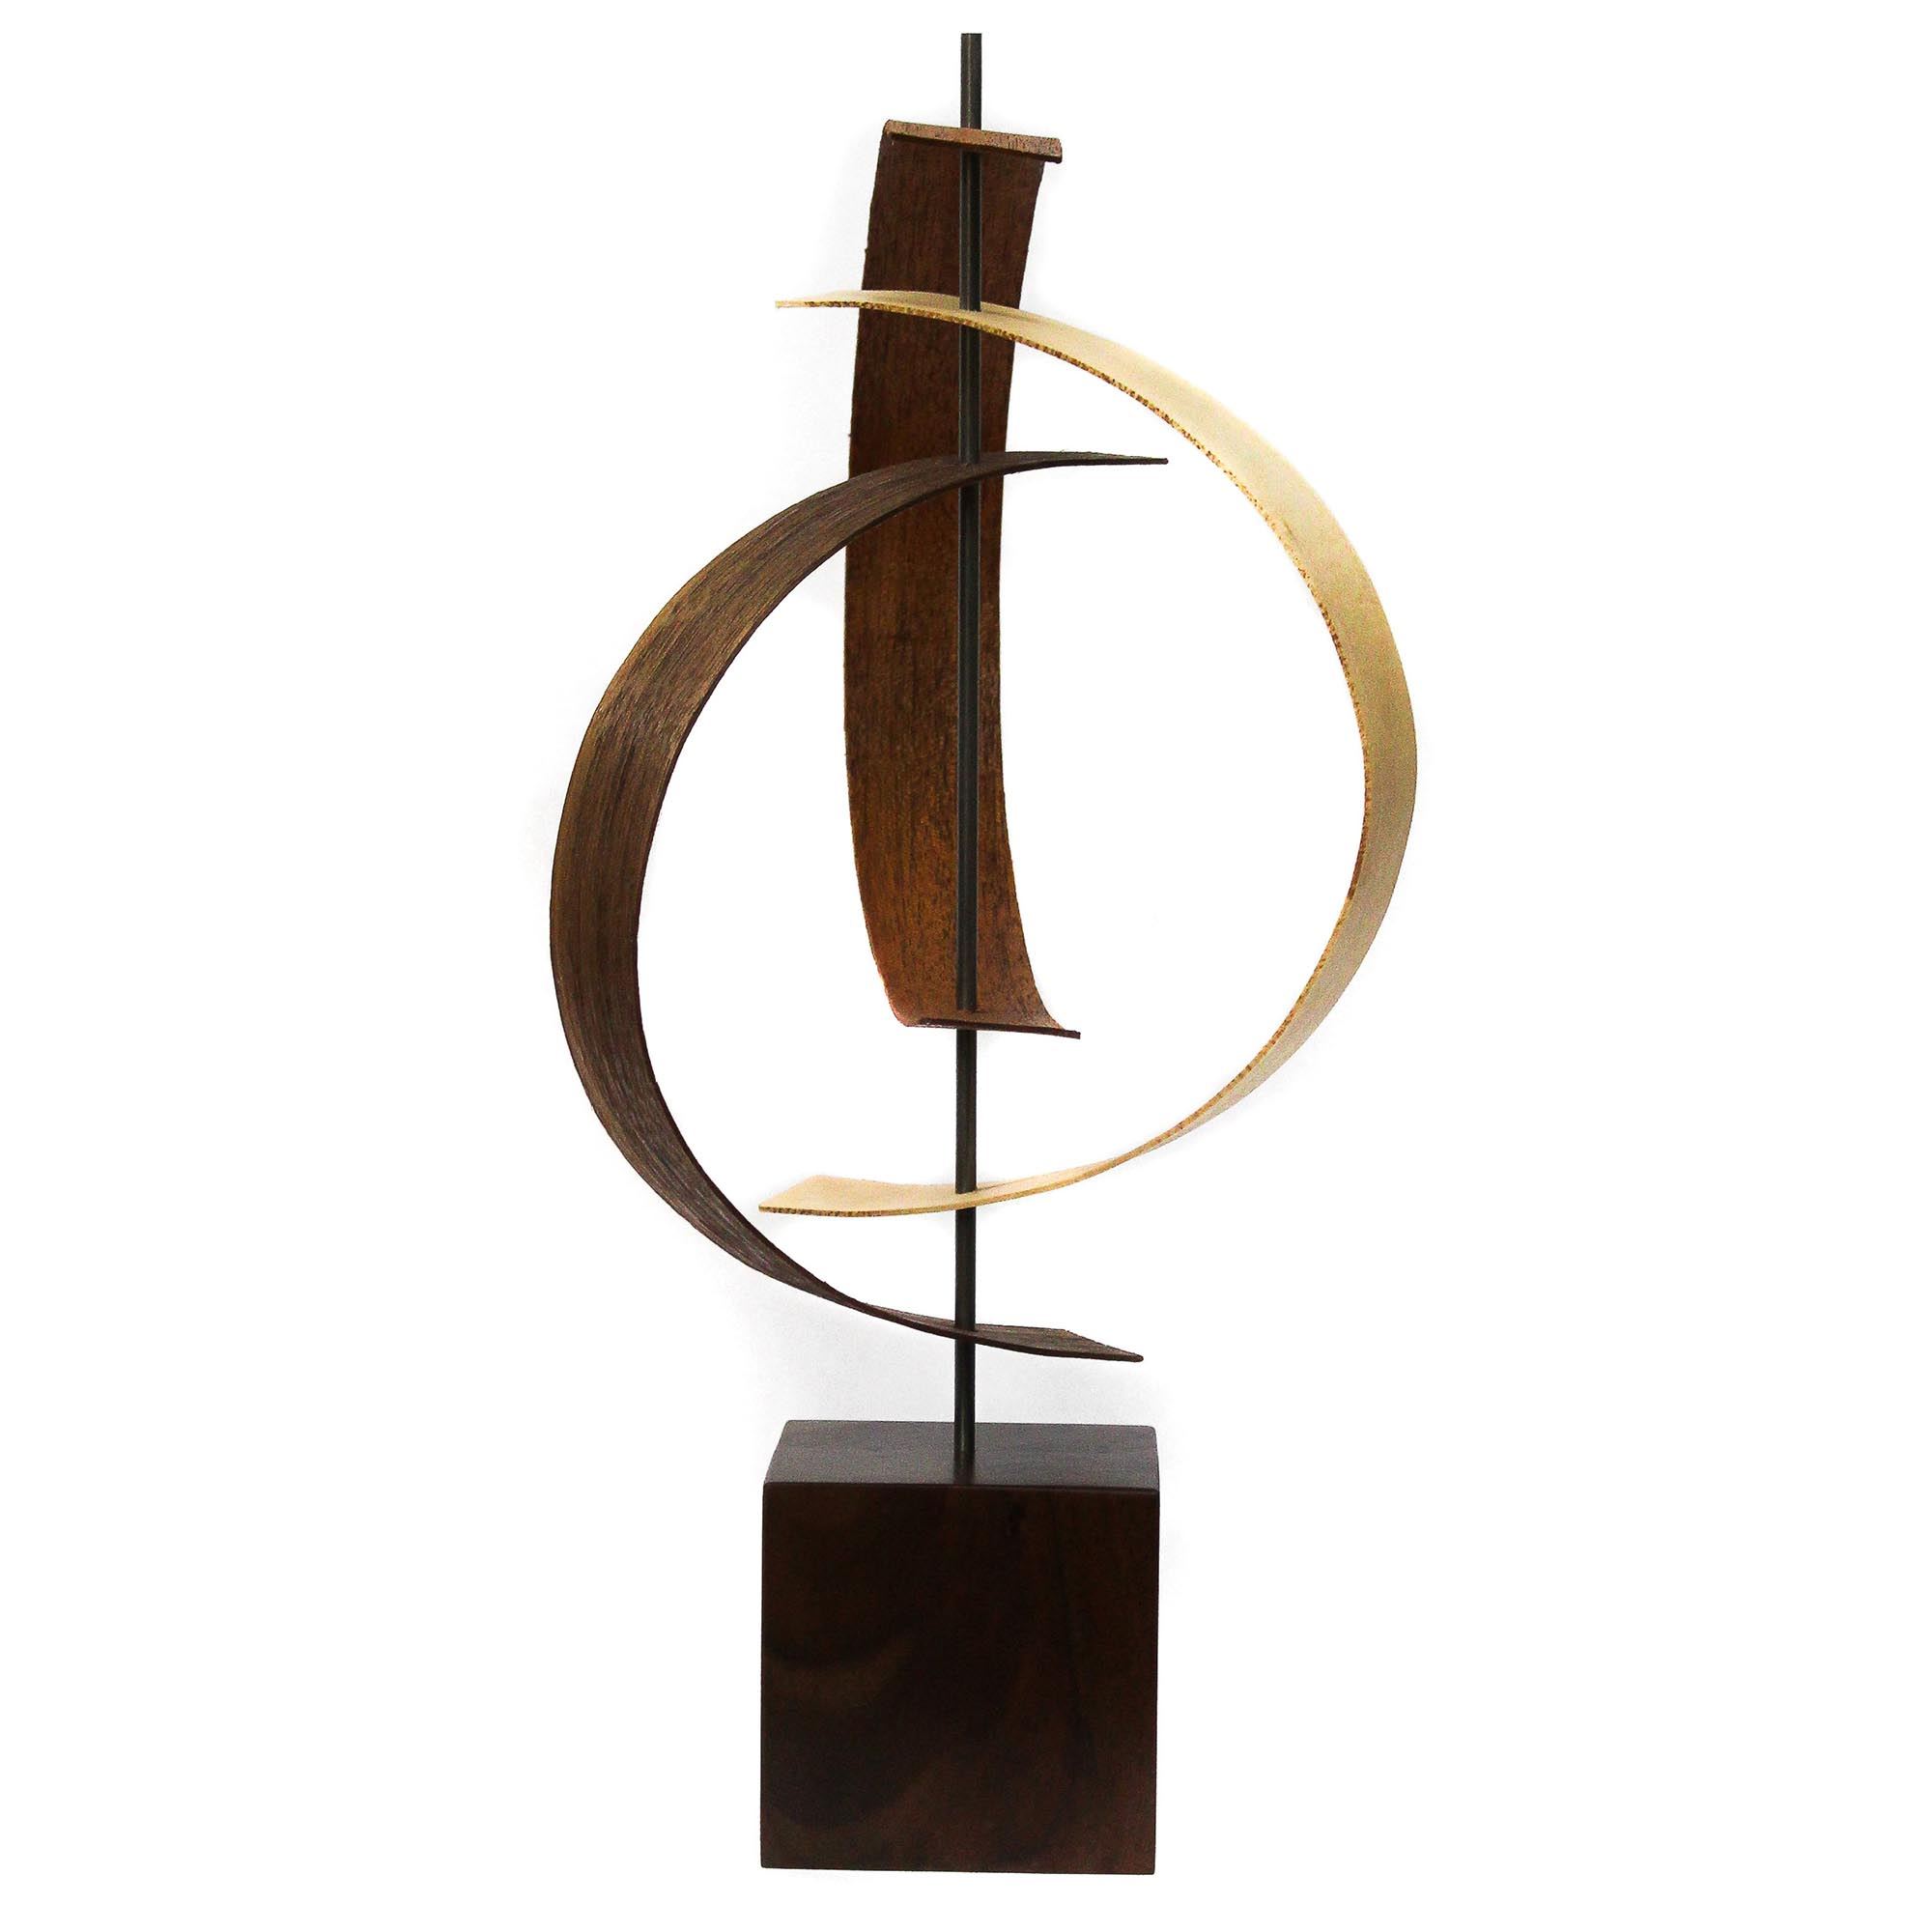 Jackson Wright 'Origin' 8in x 16in Contemporary Style Modern Wood Sculpture